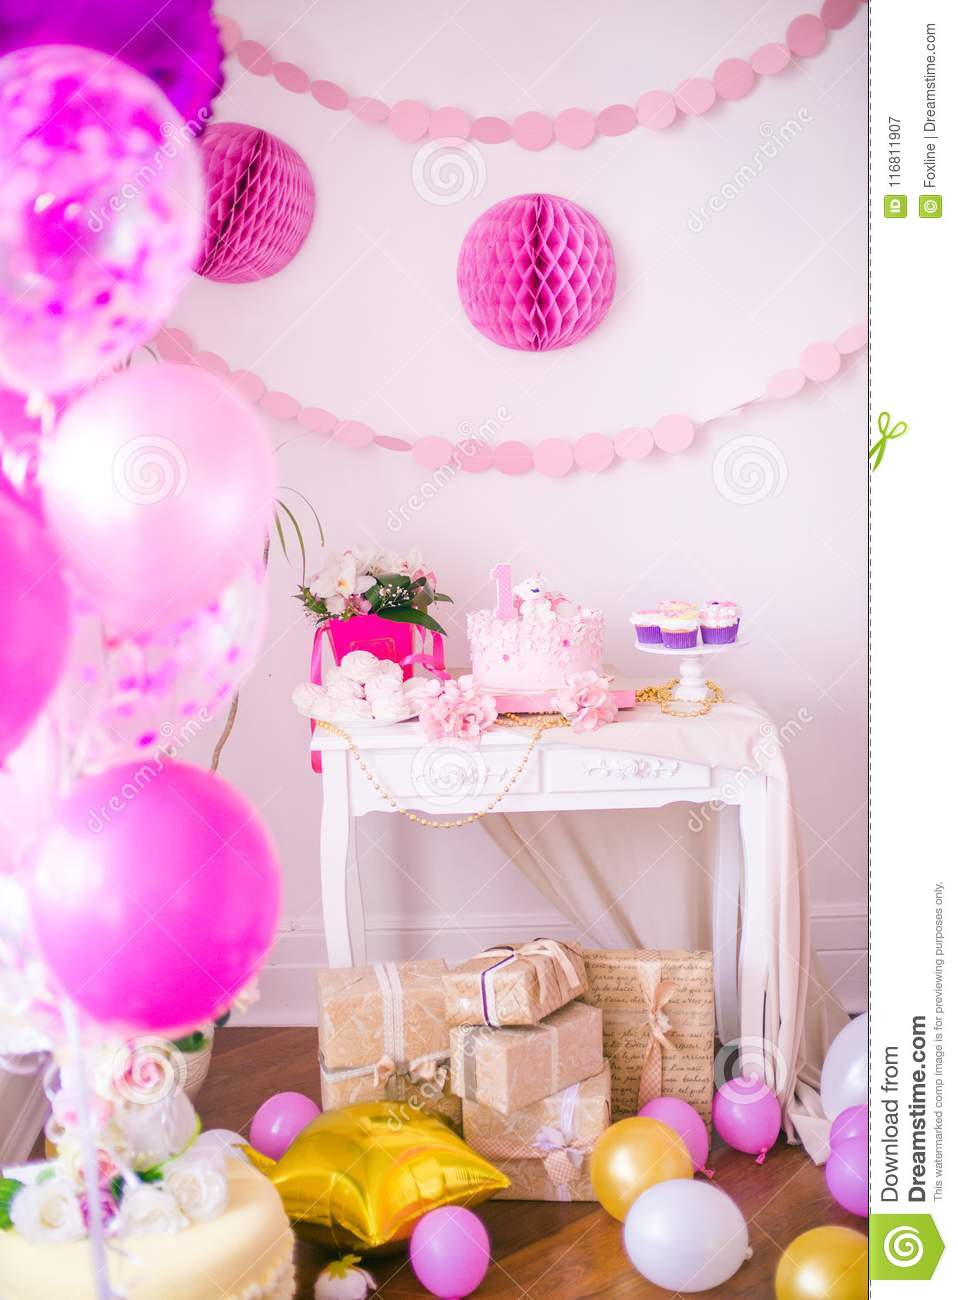 A Lovely Delicious Candy Bar In Pink And Gold Colors For Little Princess On Her 1st Birthday Beautifully Decorated Childrens Party With Balloons Flowers